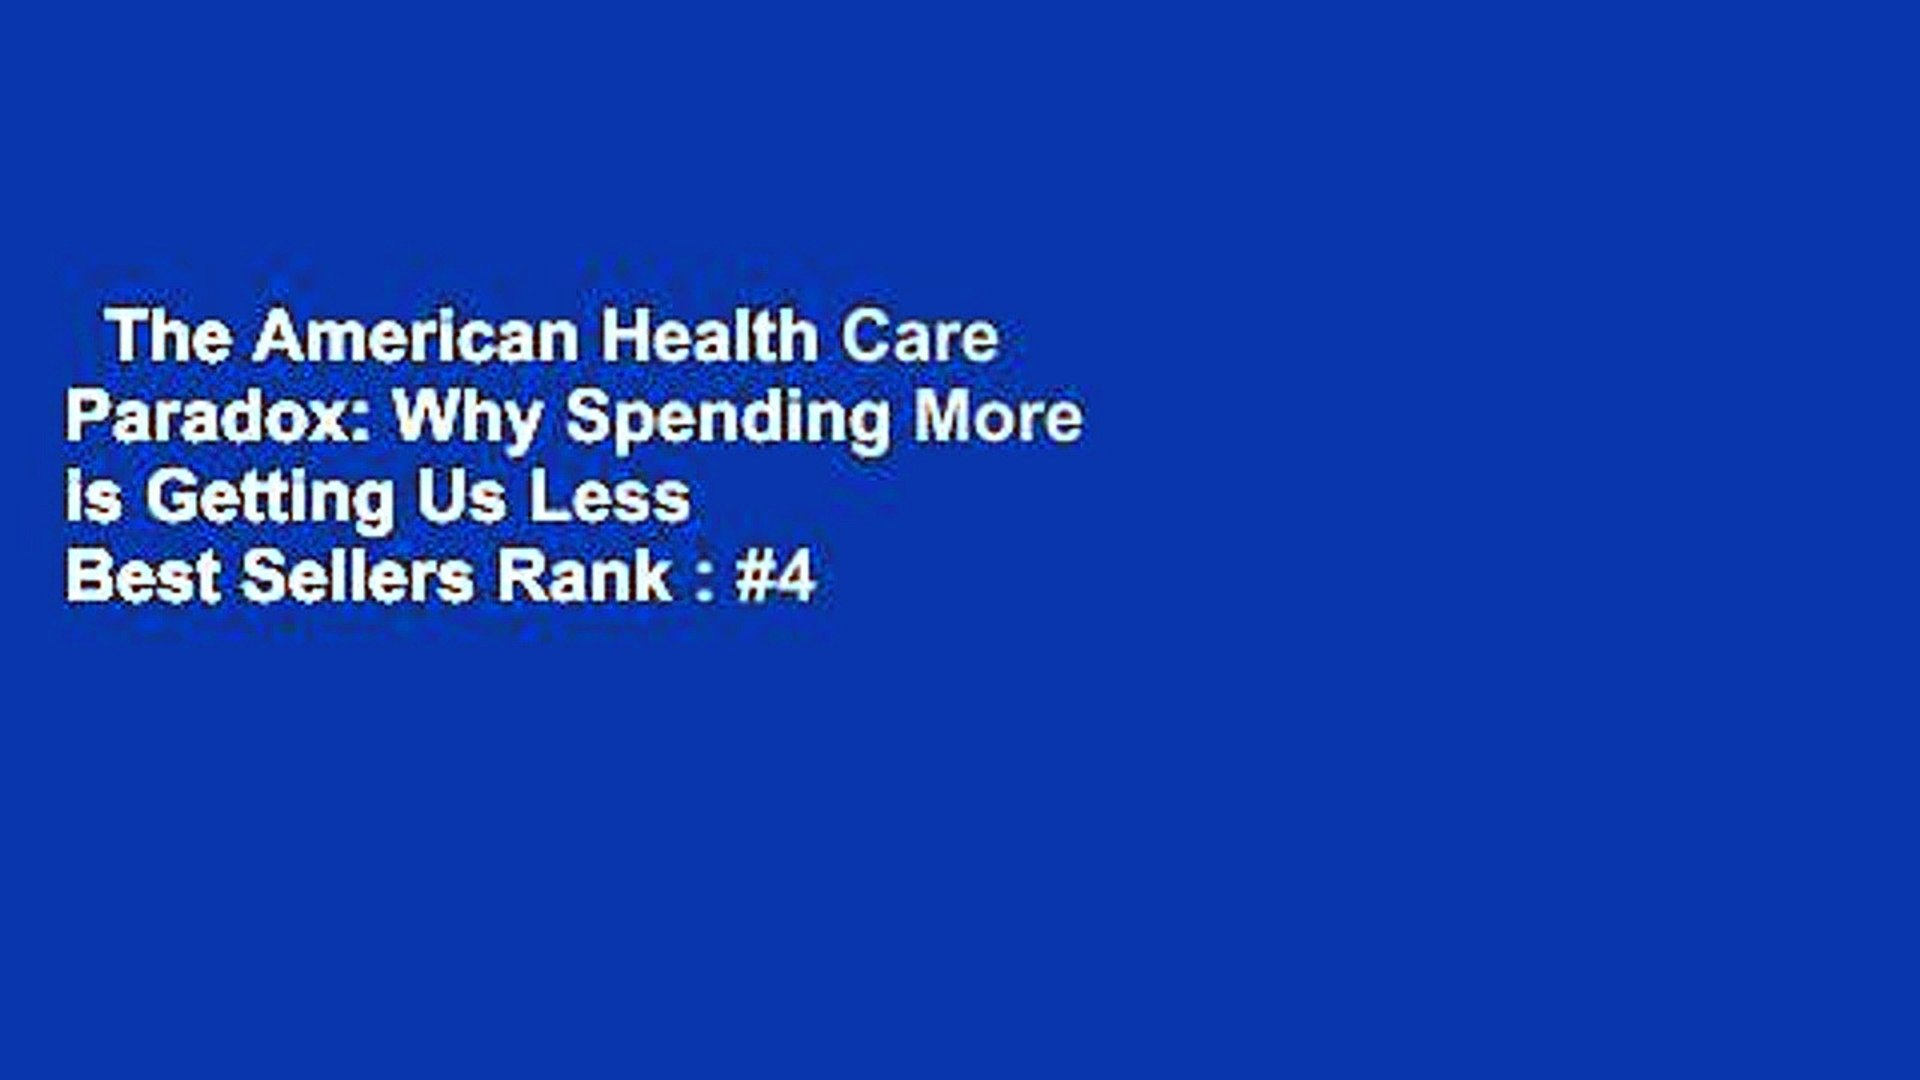 The American Health Care Paradox Why Spending More is Getting Us Less